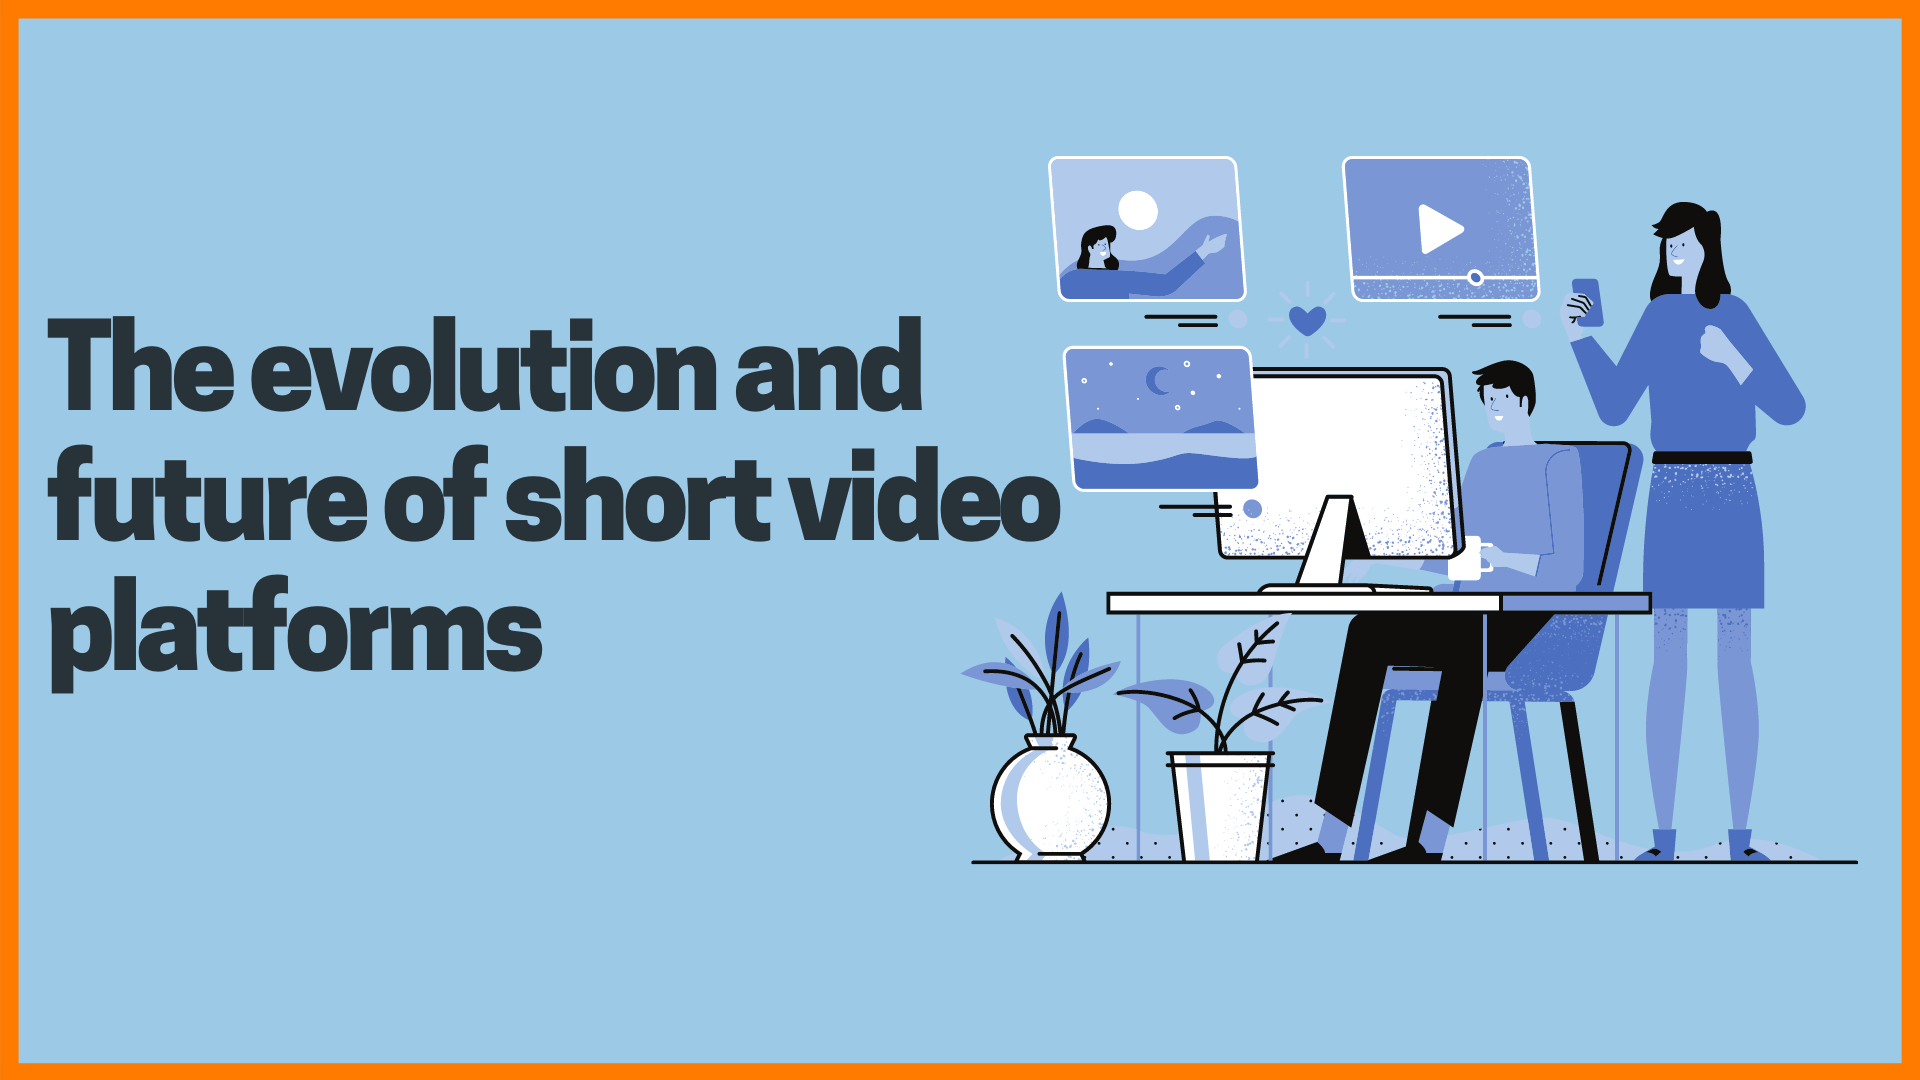 The evolution and future of short video platforms